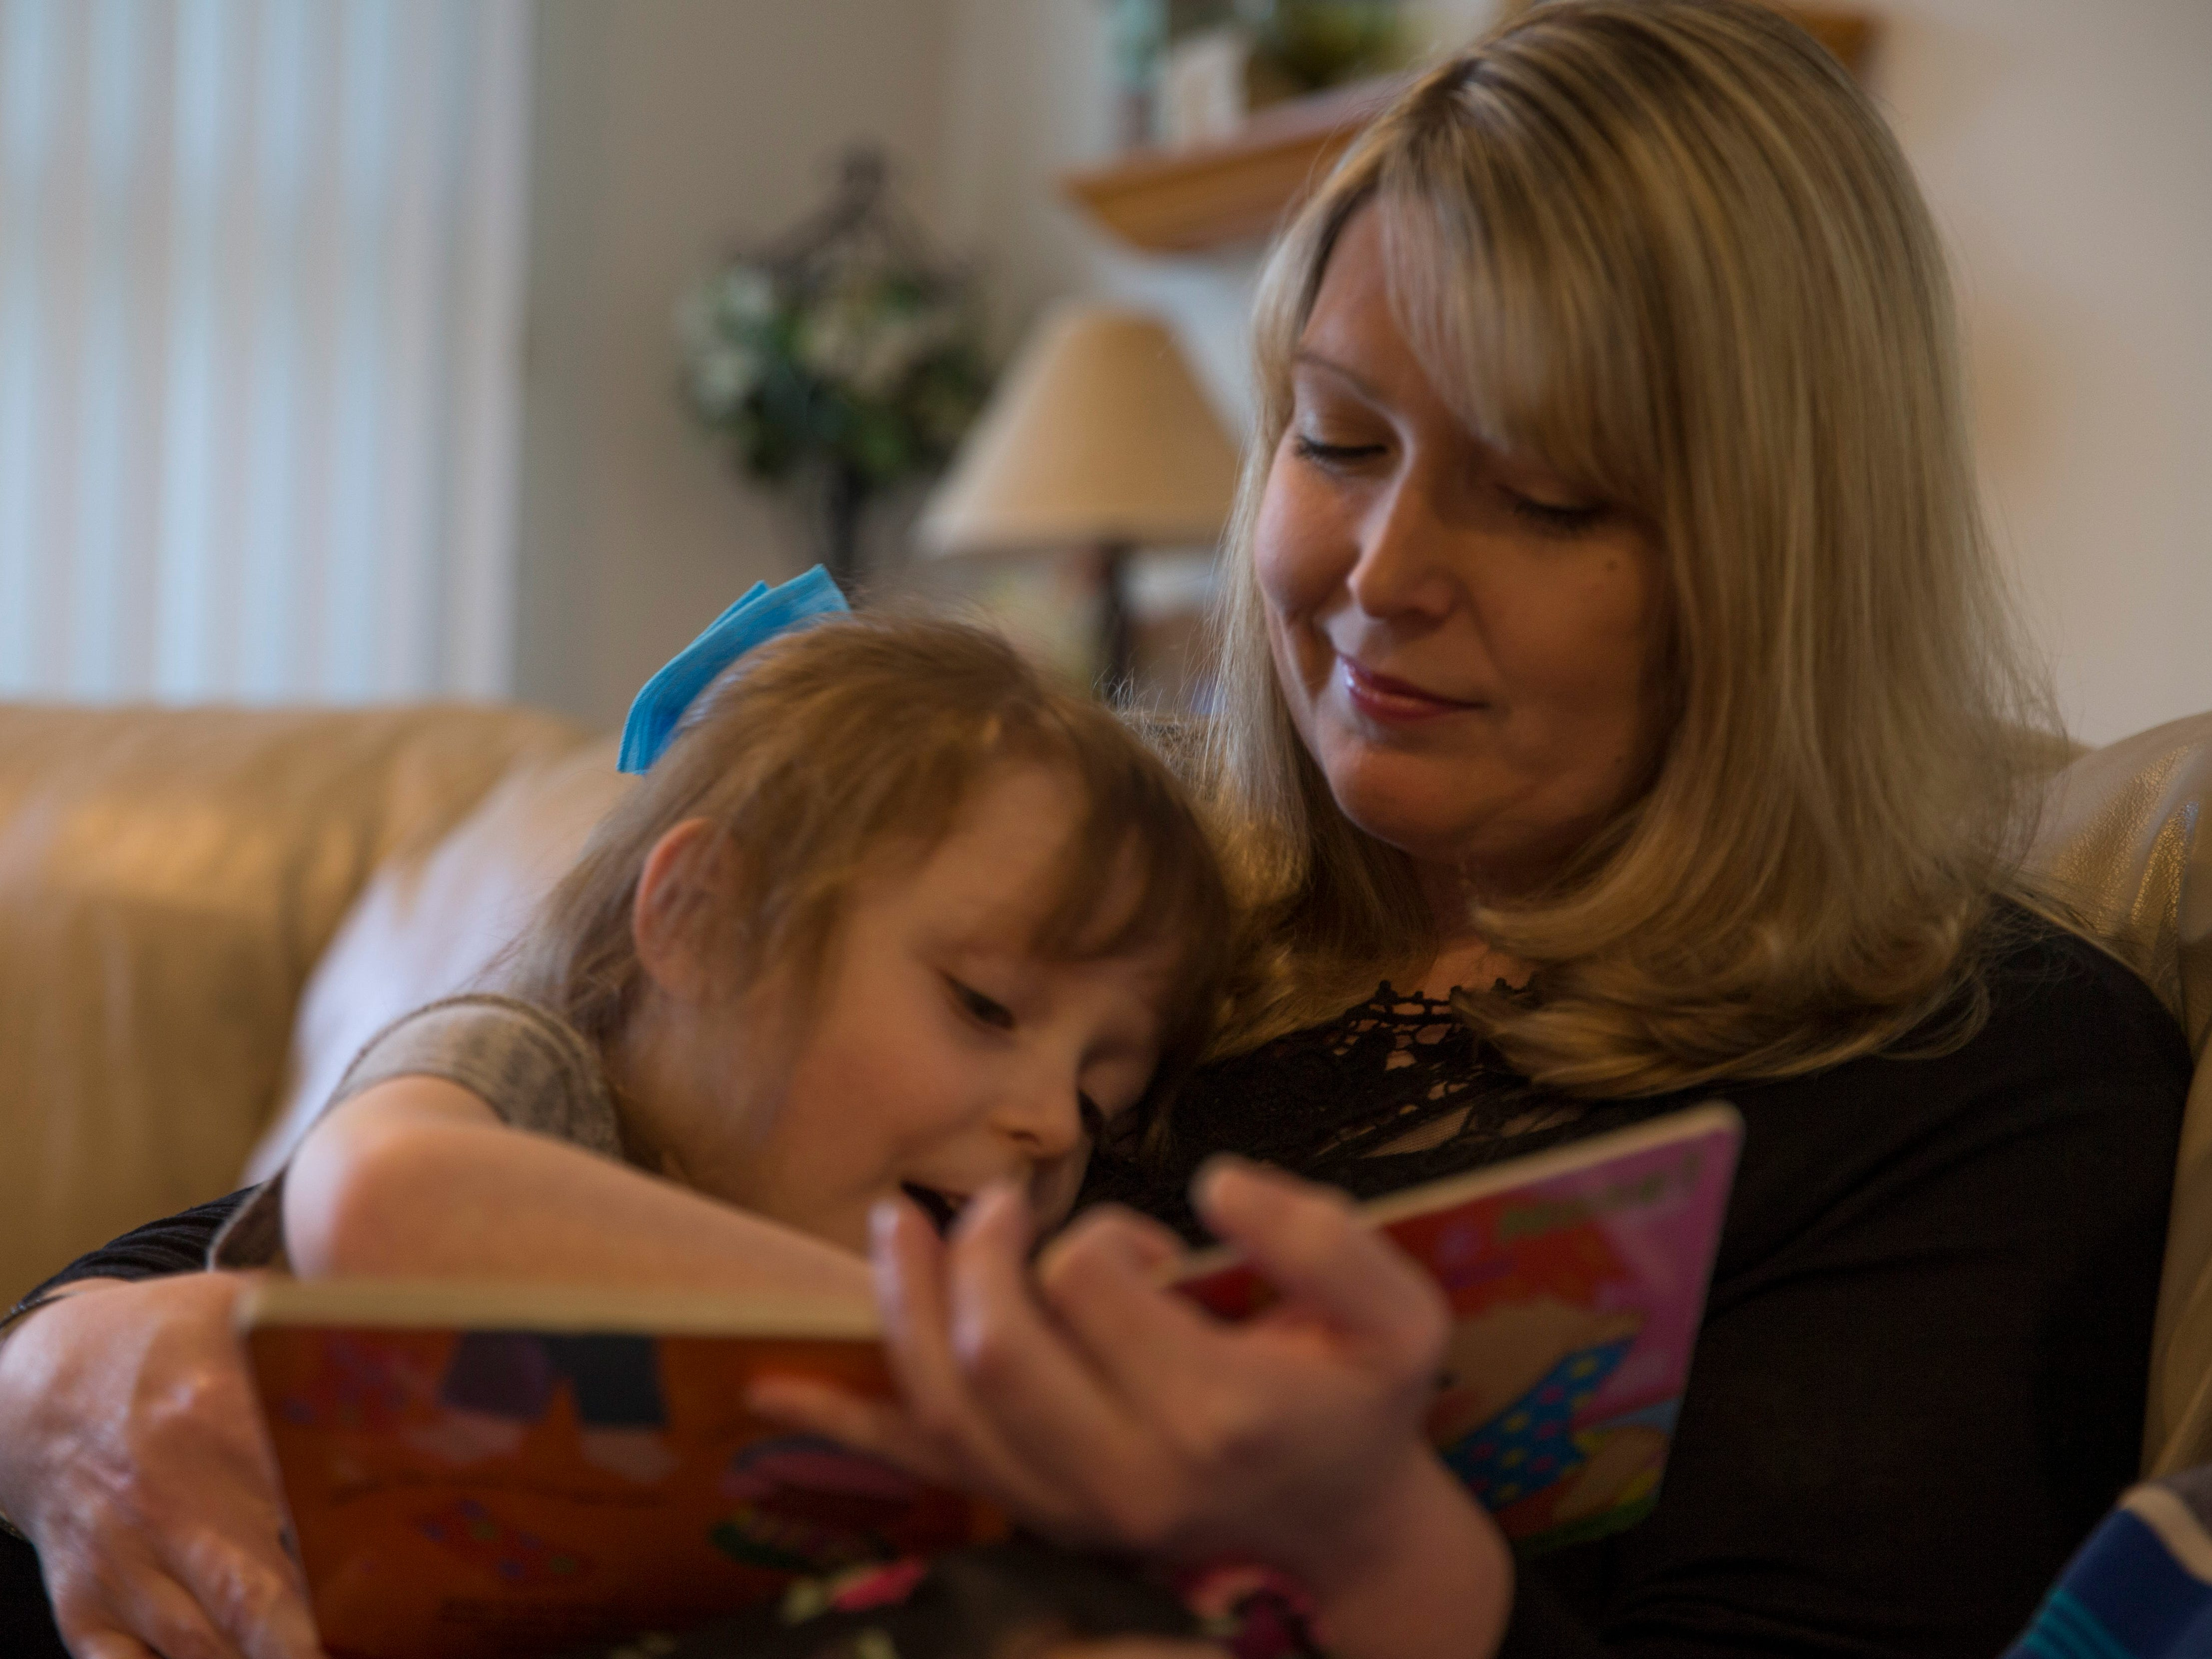 Amie Cottrell reads a book with her daughter Katelyn, 4. Jackson native Amie Cottrell is a 39-year-old mother of four young children that is battling Stage 4 breast cancer. She shares her story about managing motherhood despite the advanced cancer. Jackson, NJTuesday, May 7, 2019